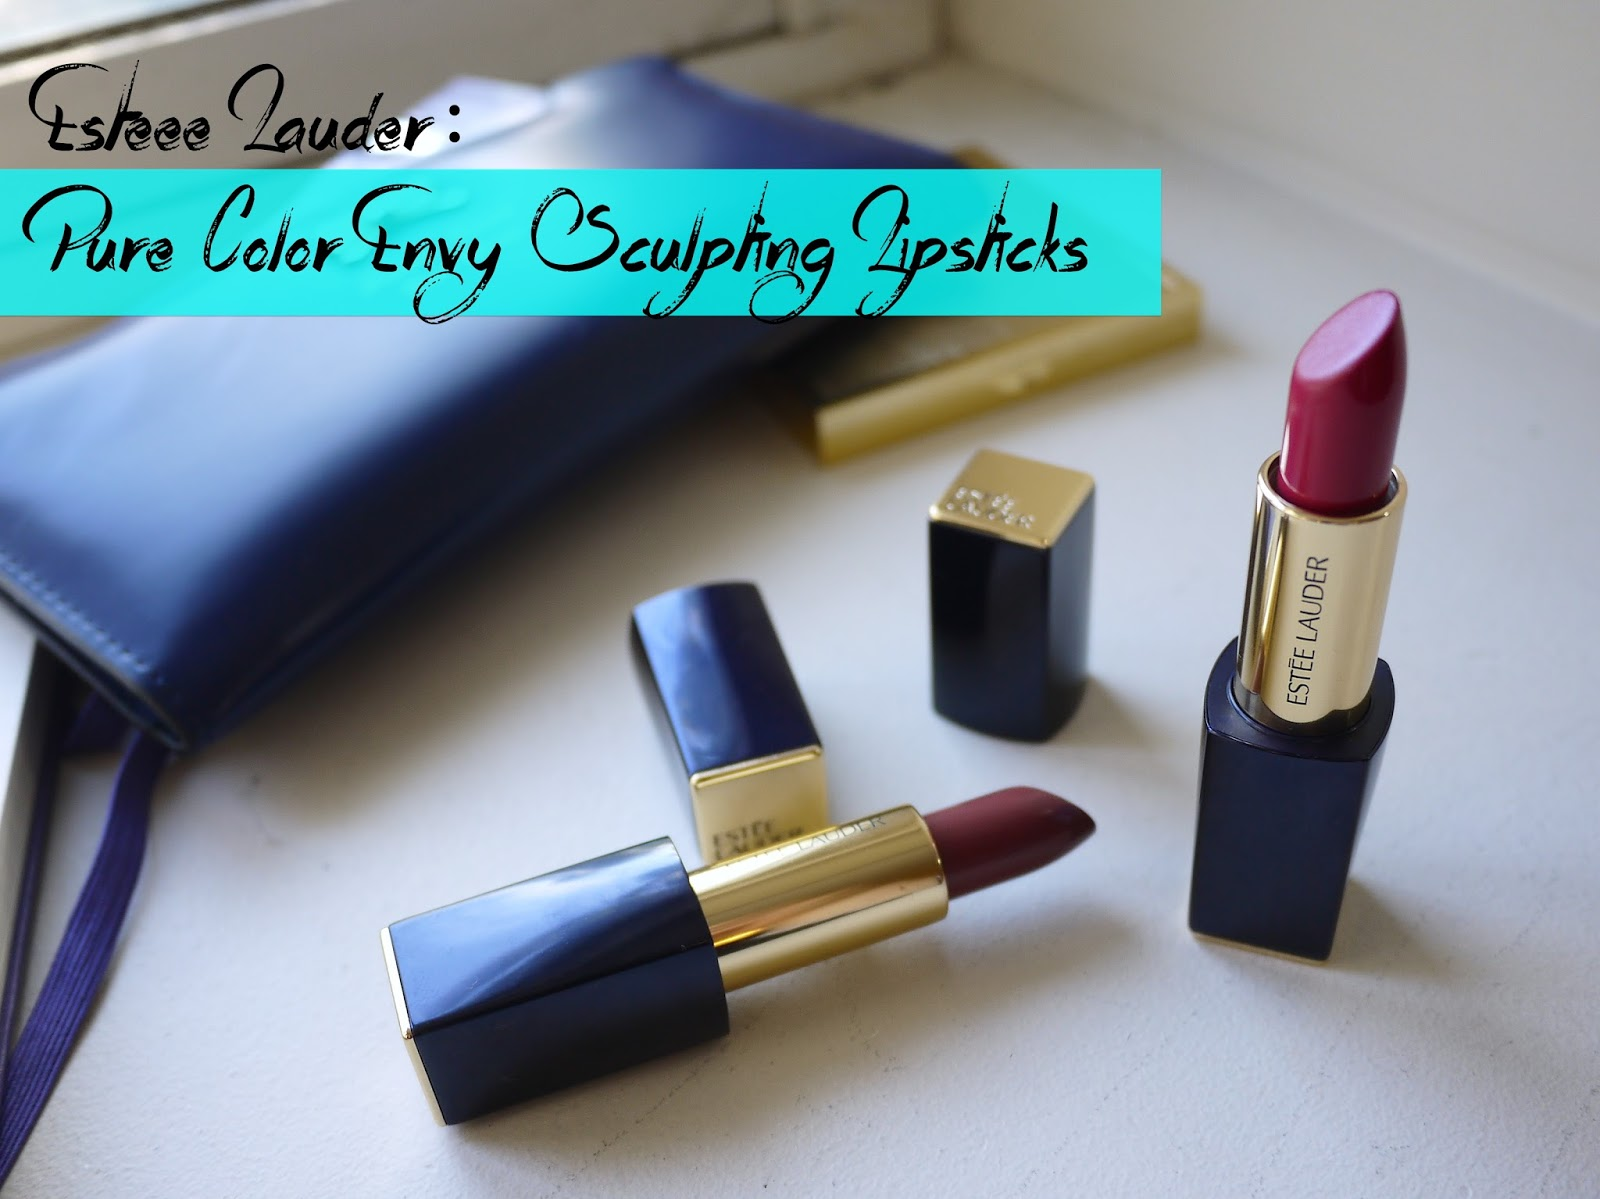 Estee Lauder Pure Color Envy Sculpting Lipsticks Confident Dangerous Swatch review